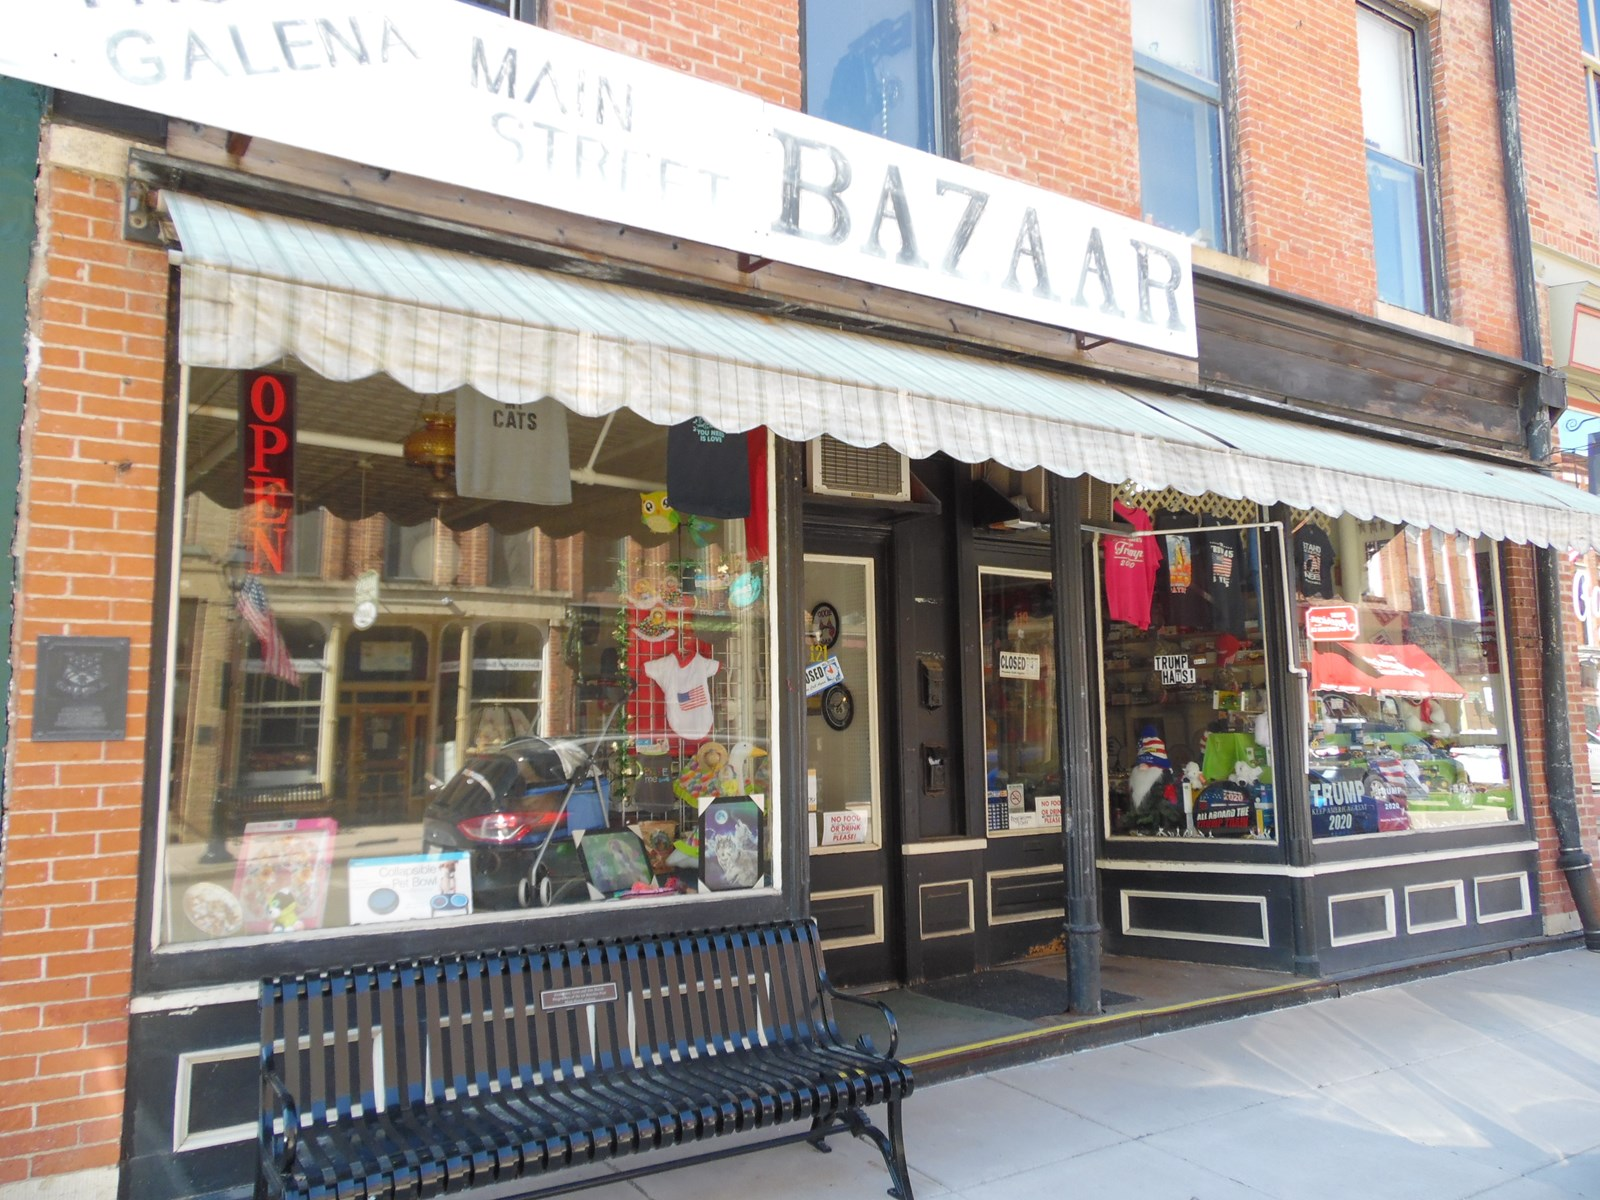 Commercial  & Residential Building for sale Main St, Galena